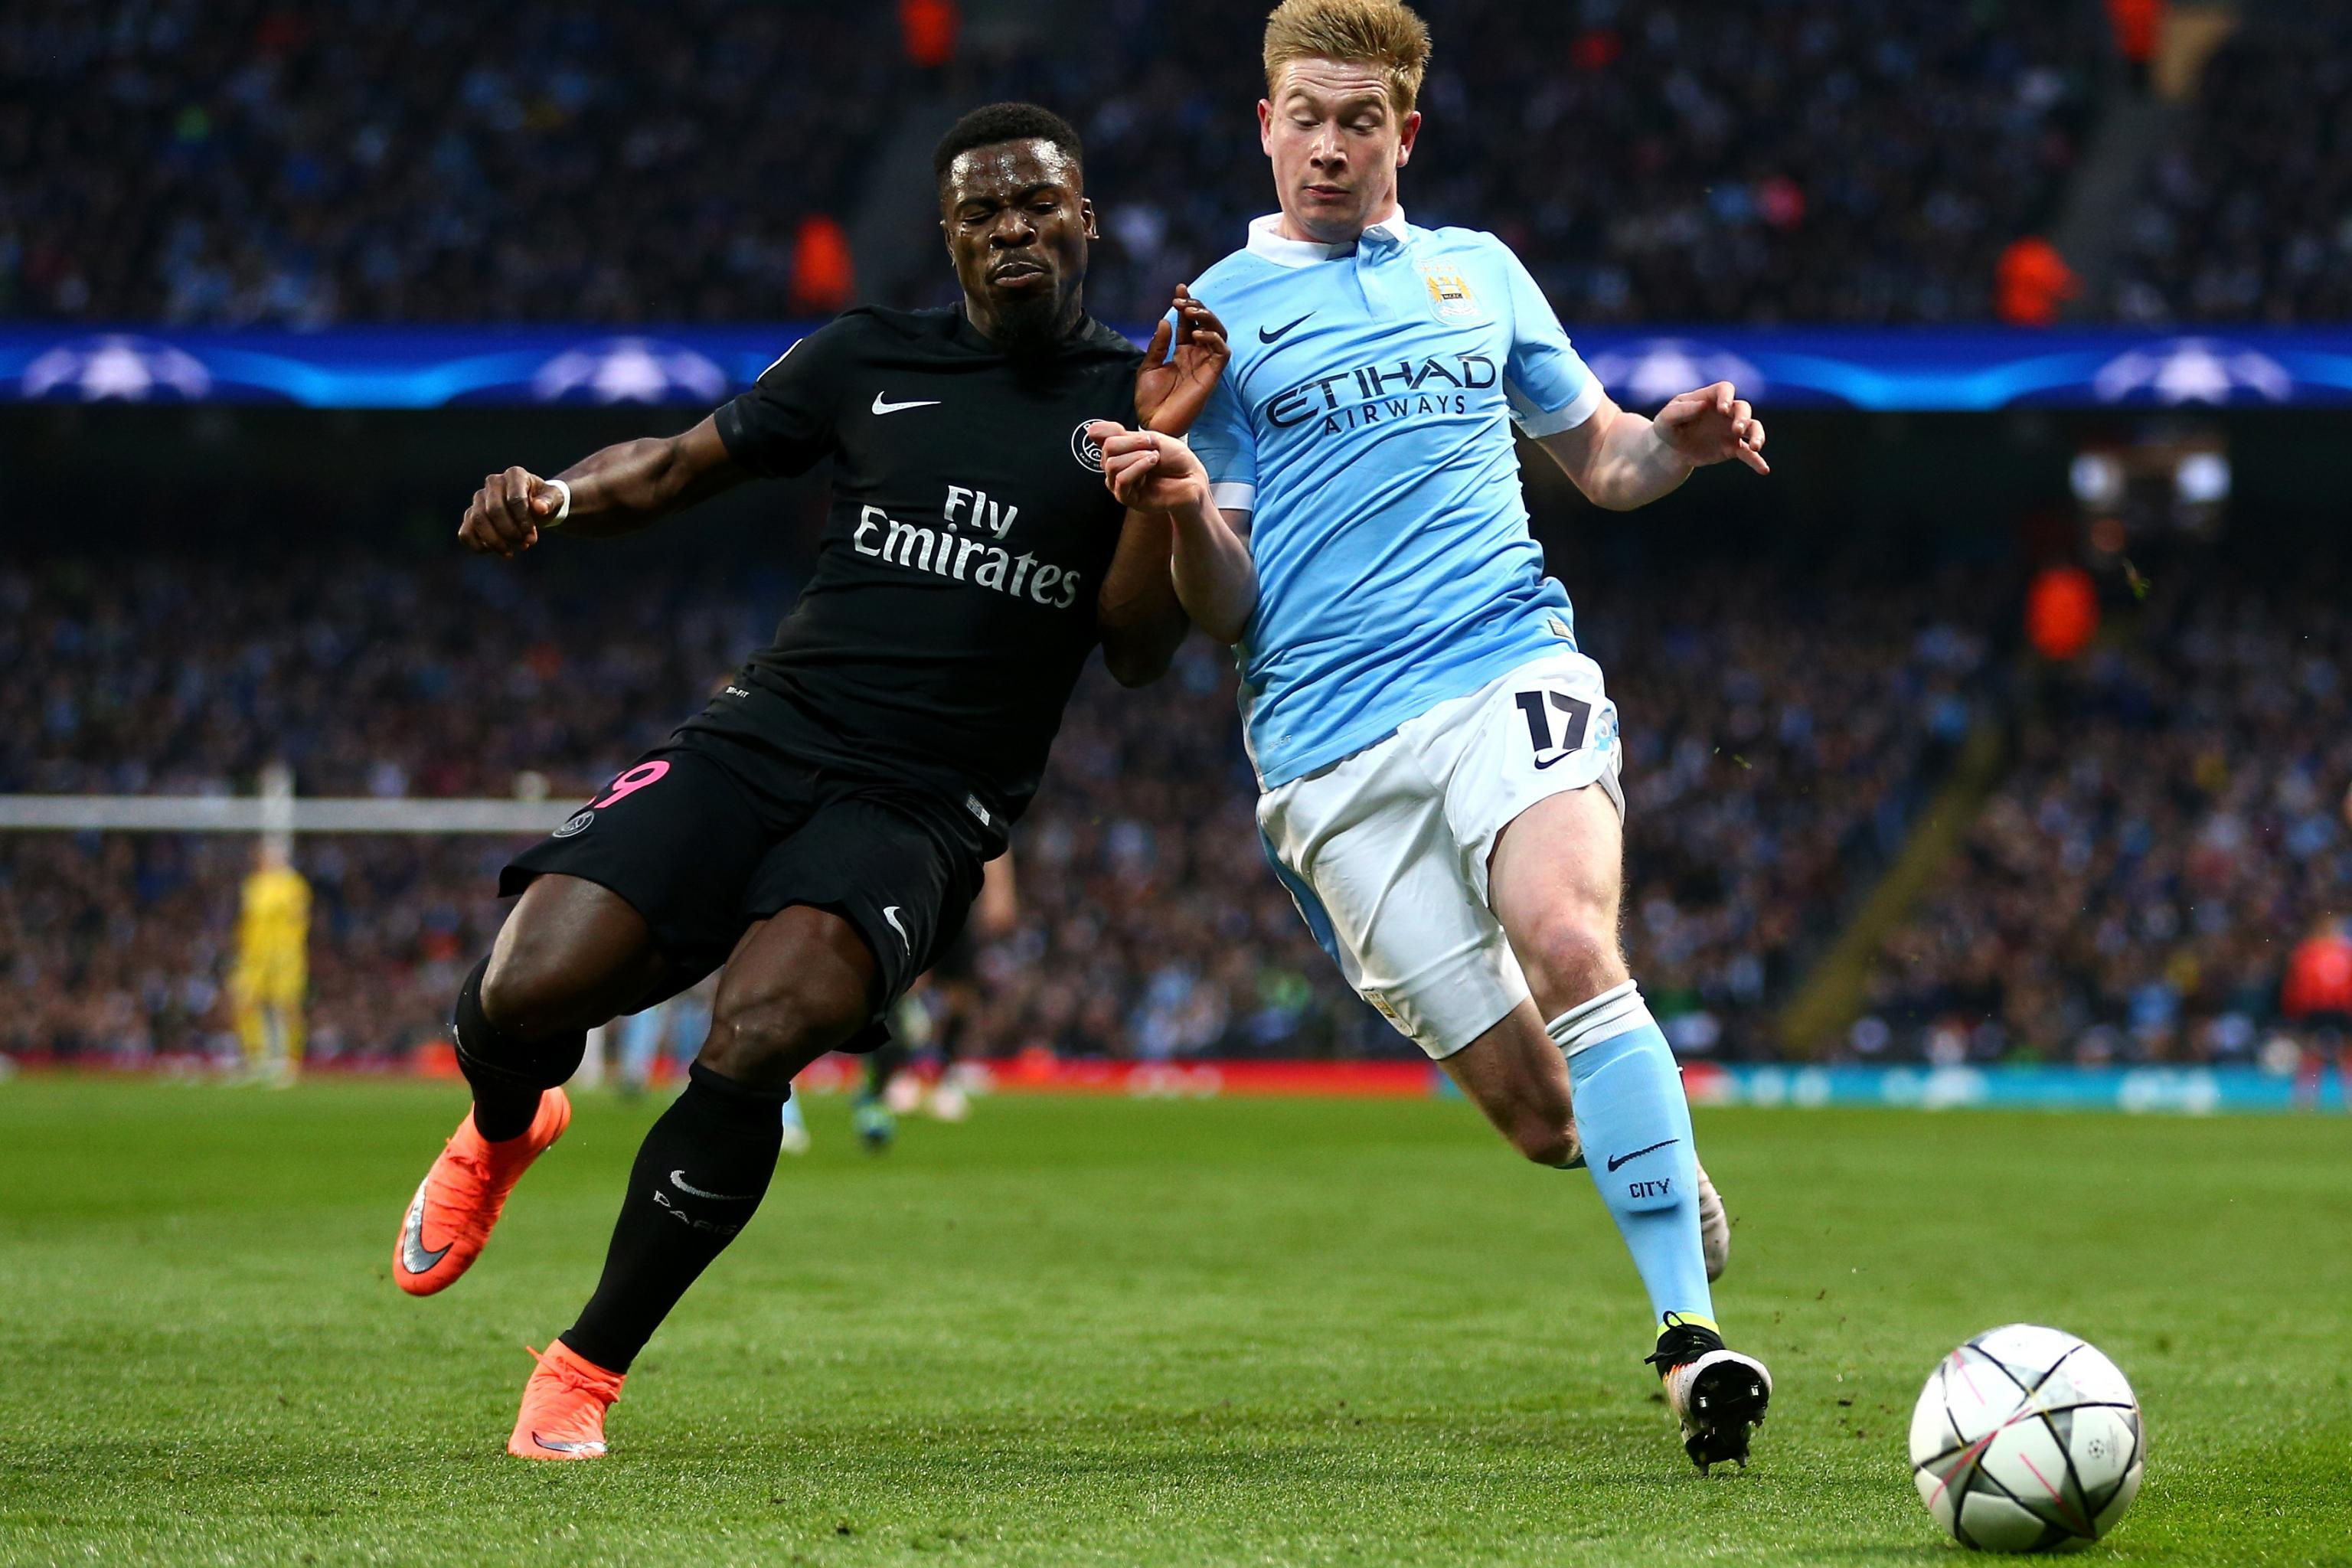 Manchester City Vs Psg Goals And Highlights From 2016 Champions League Game Bleacher Report Latest News Videos And Highlights